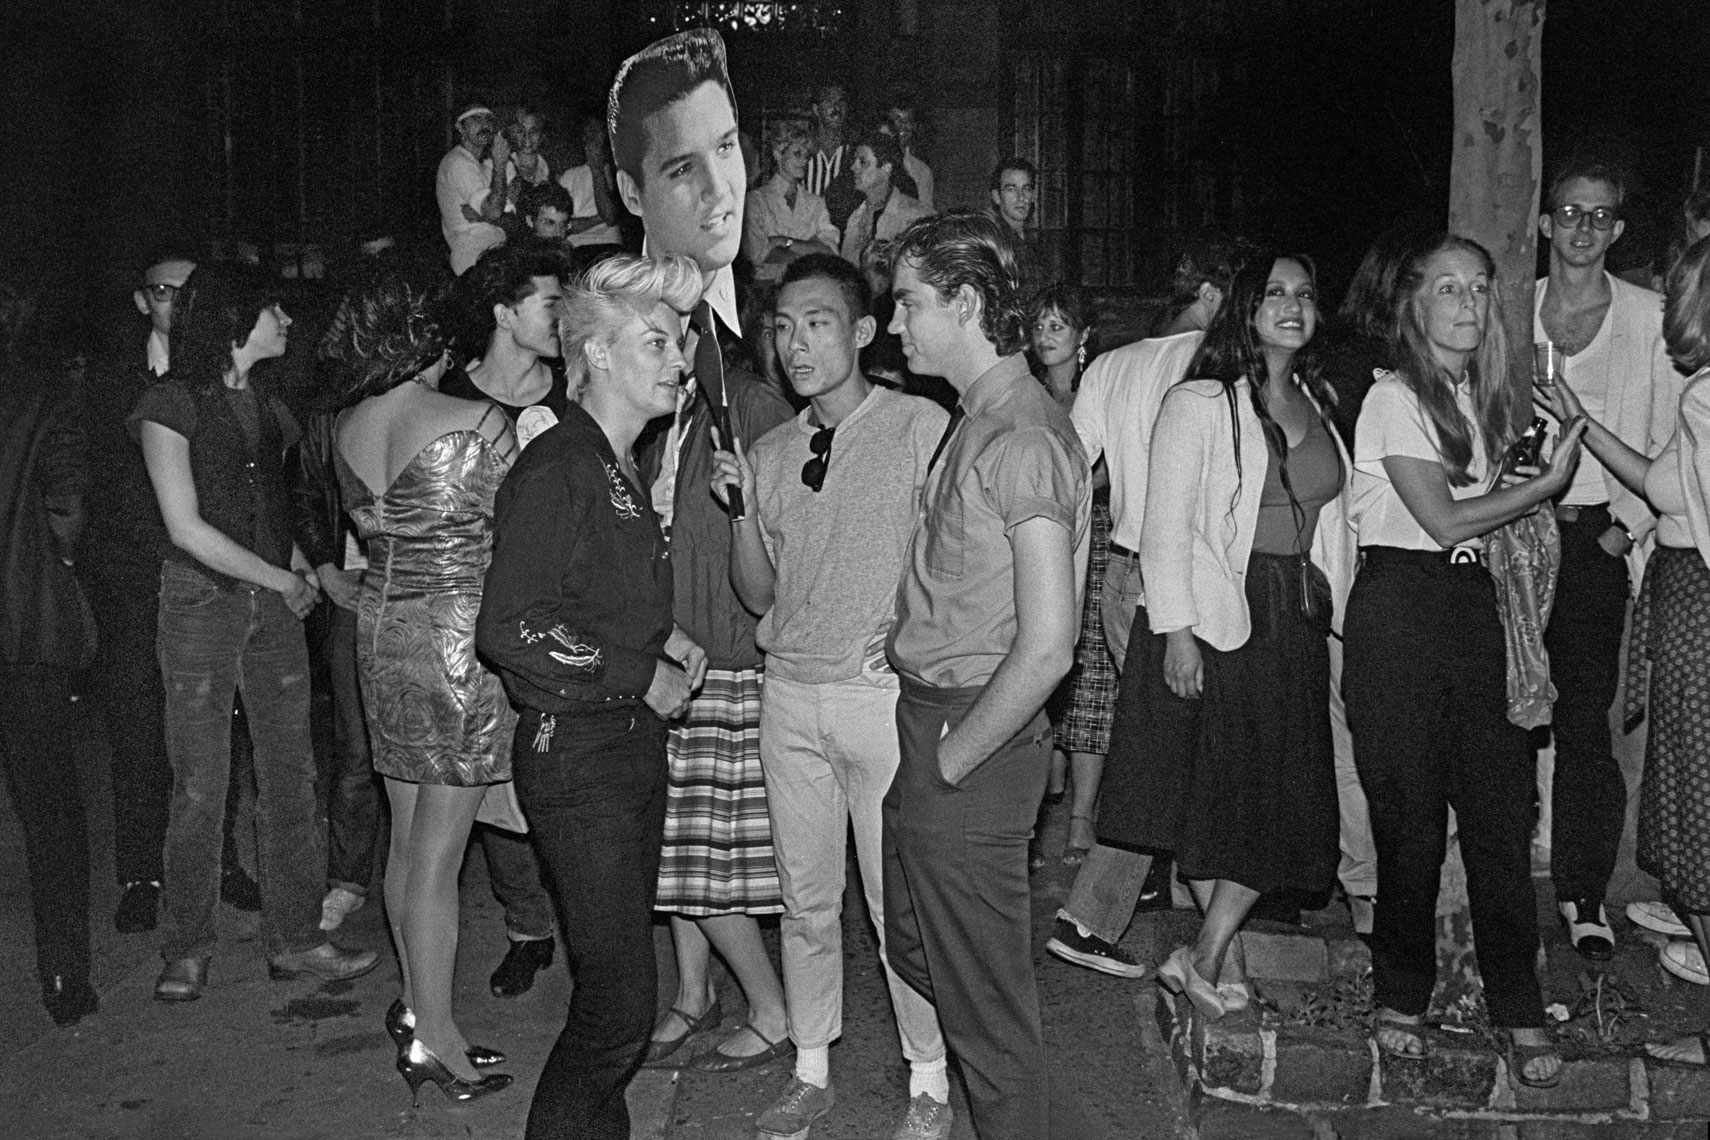 26_Club57_Elvis-Memorial-Party-out-on-street-after-fire-in-Club_John-Sex-and-Tseng-Kwong-Chi_0880.jpg